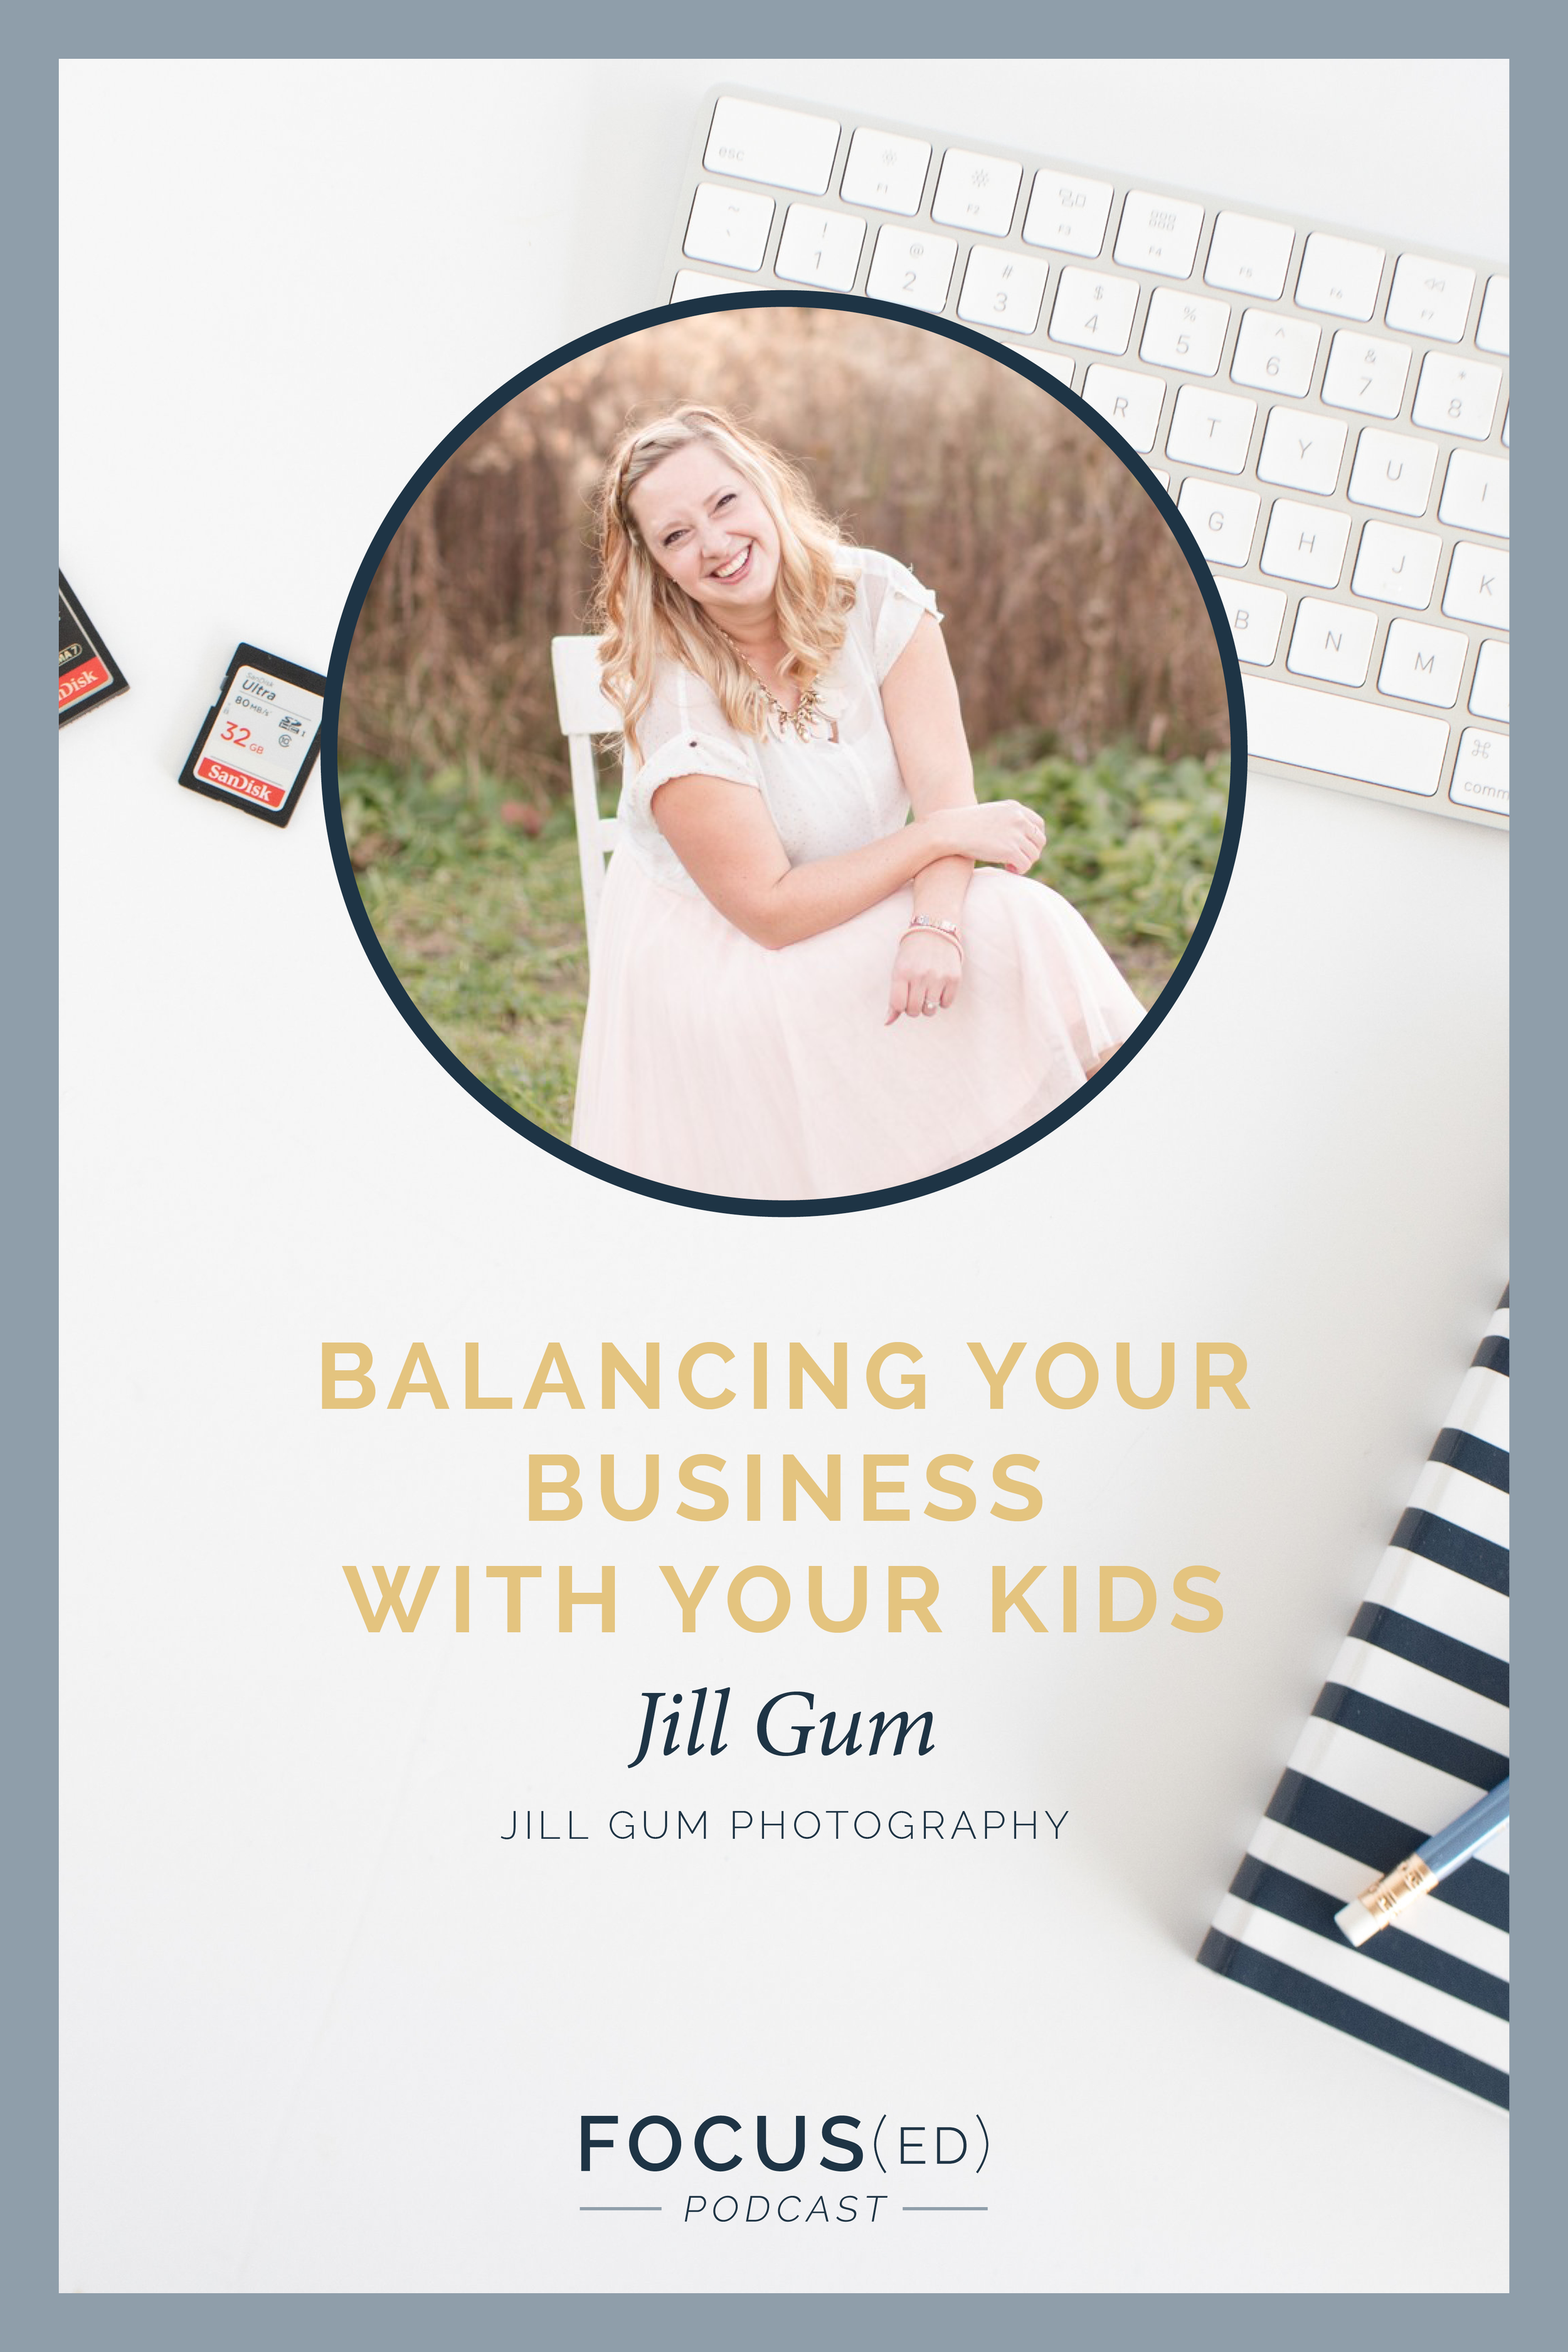 Balancing your business with also having small children